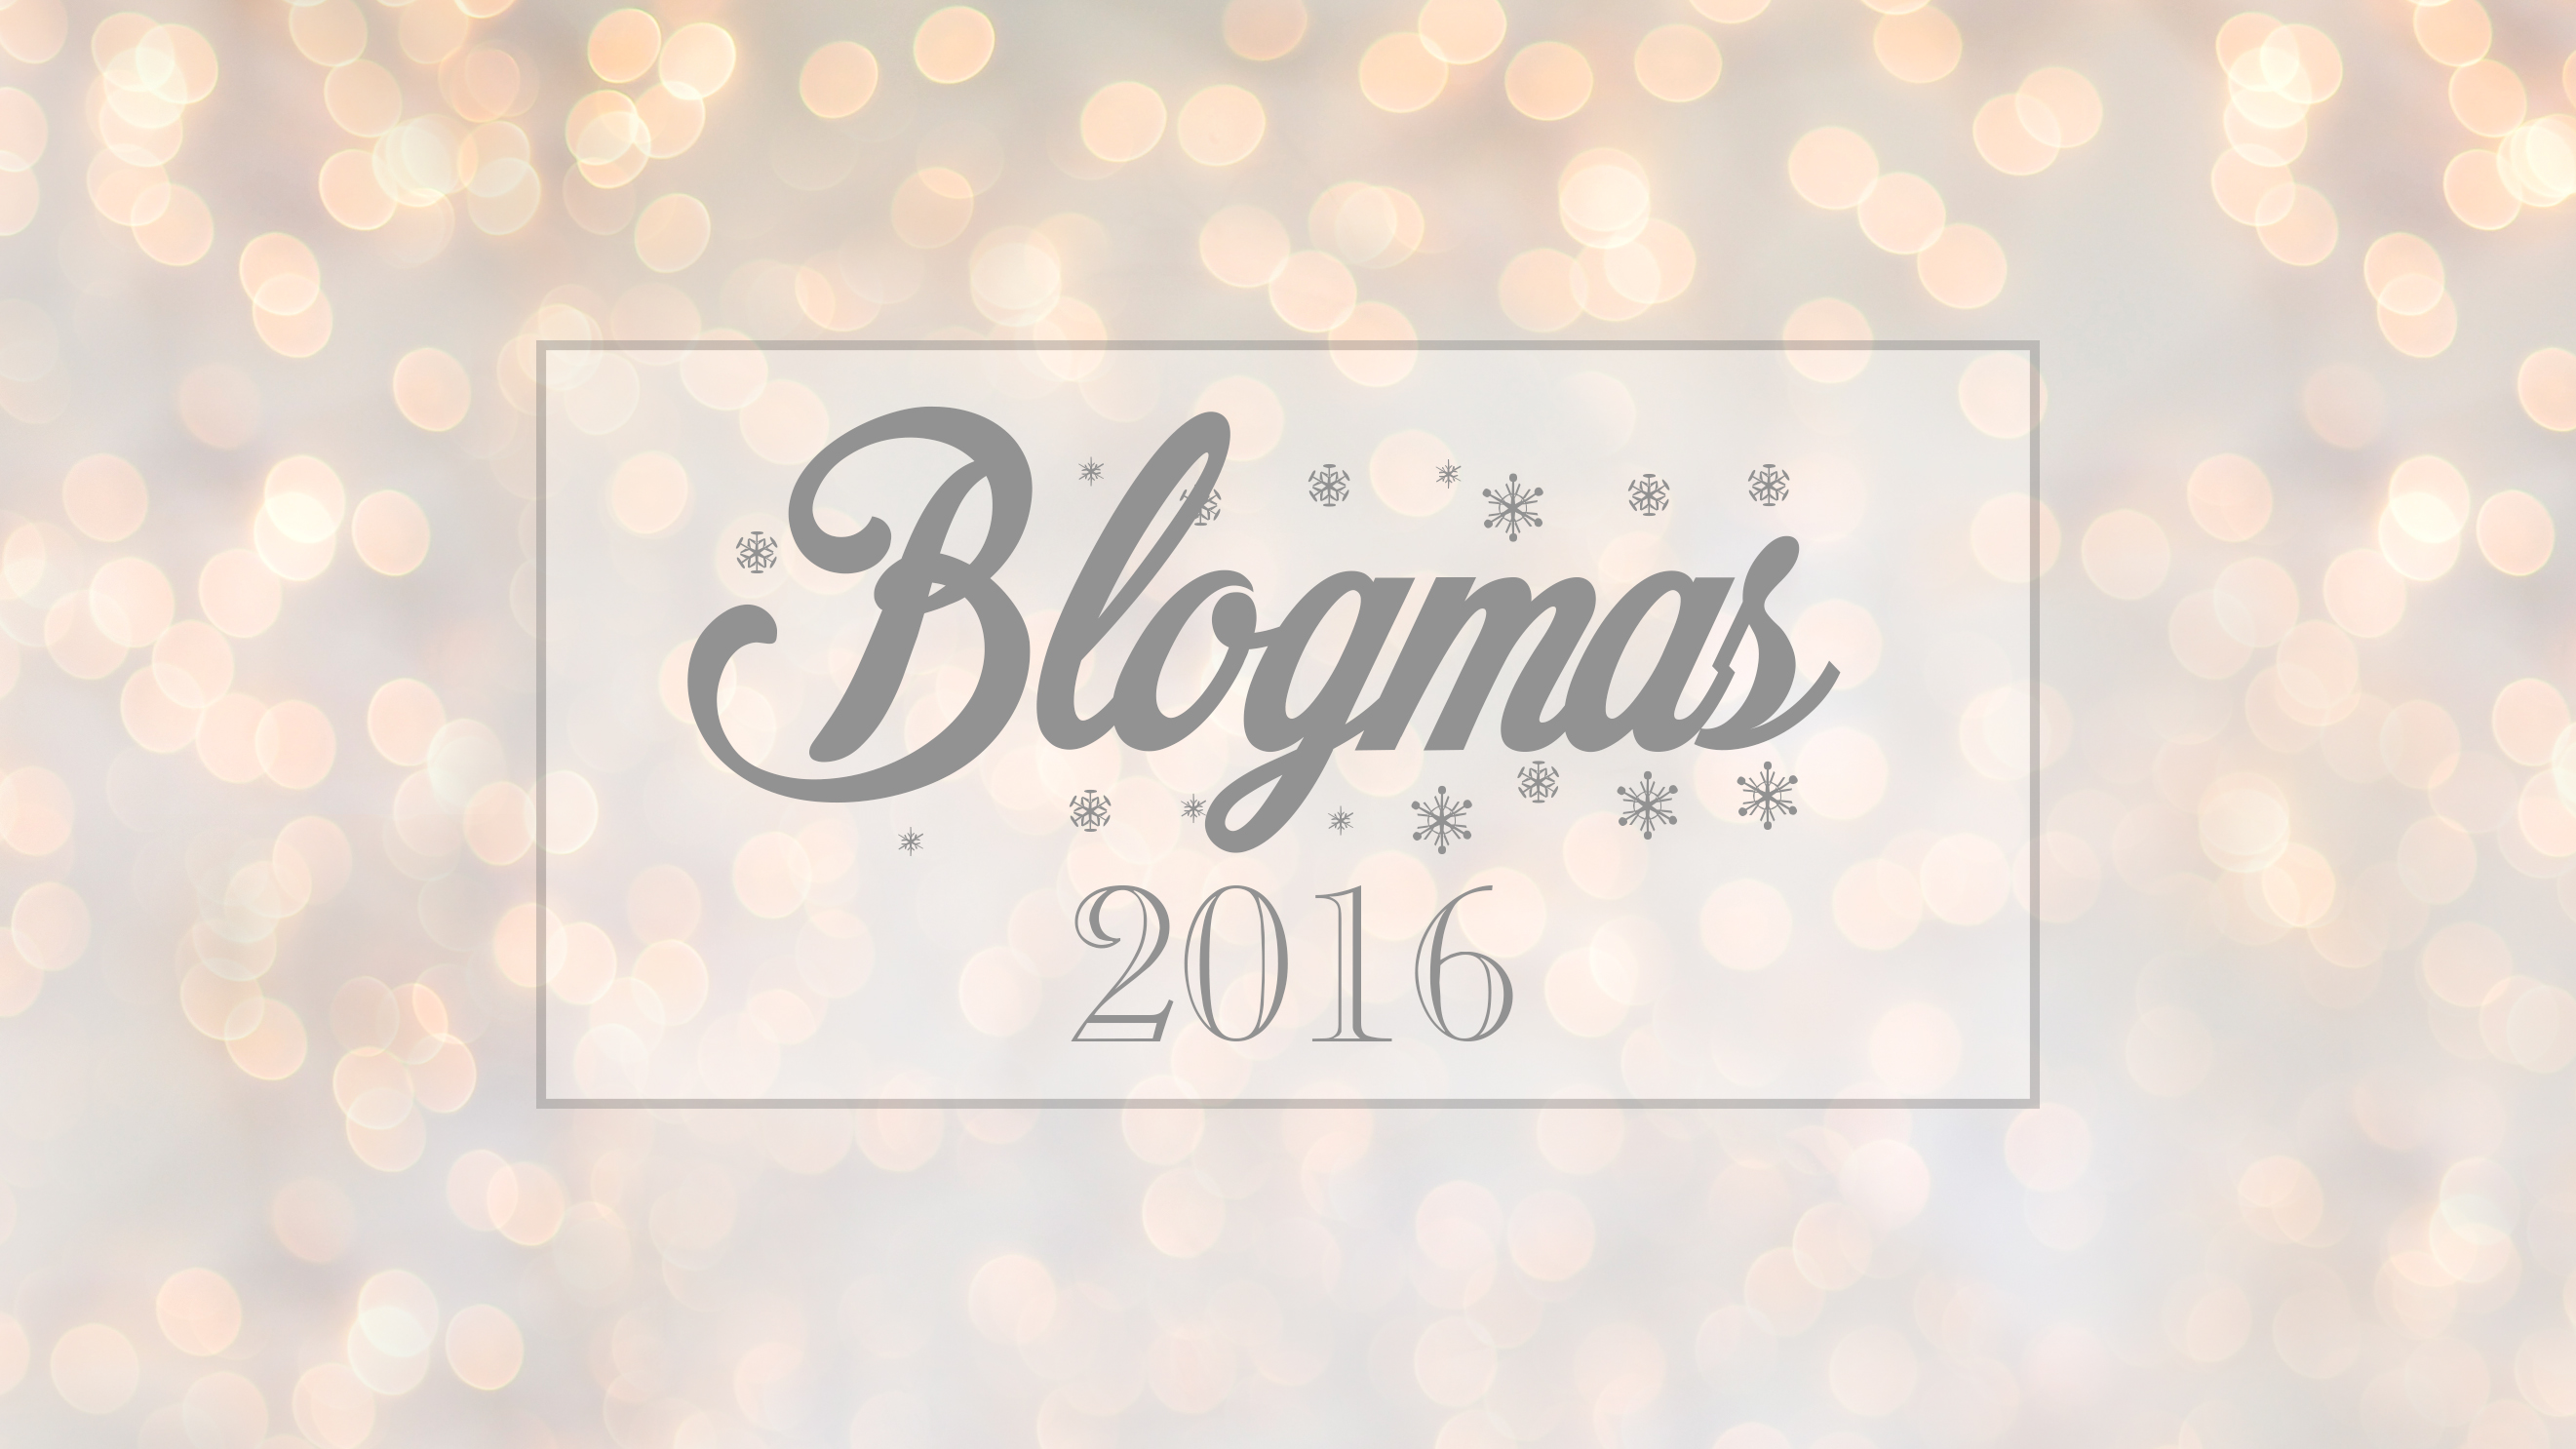 BLOGMAS | BABY FEET CHRISTMAS CARDS